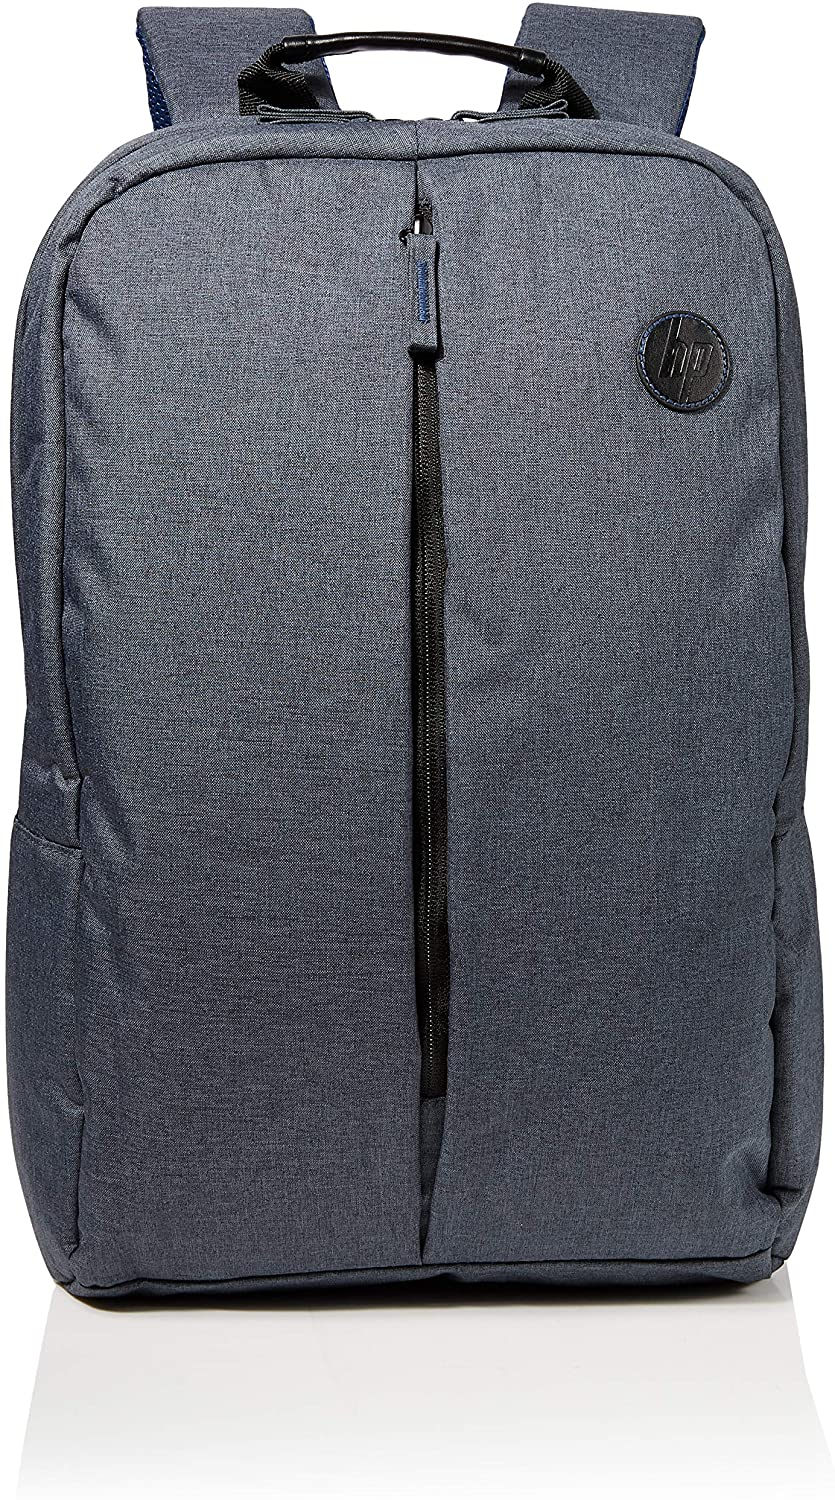 "HP Mochila para Portatil HP 15.6"" Value Backpack K0B39AA"